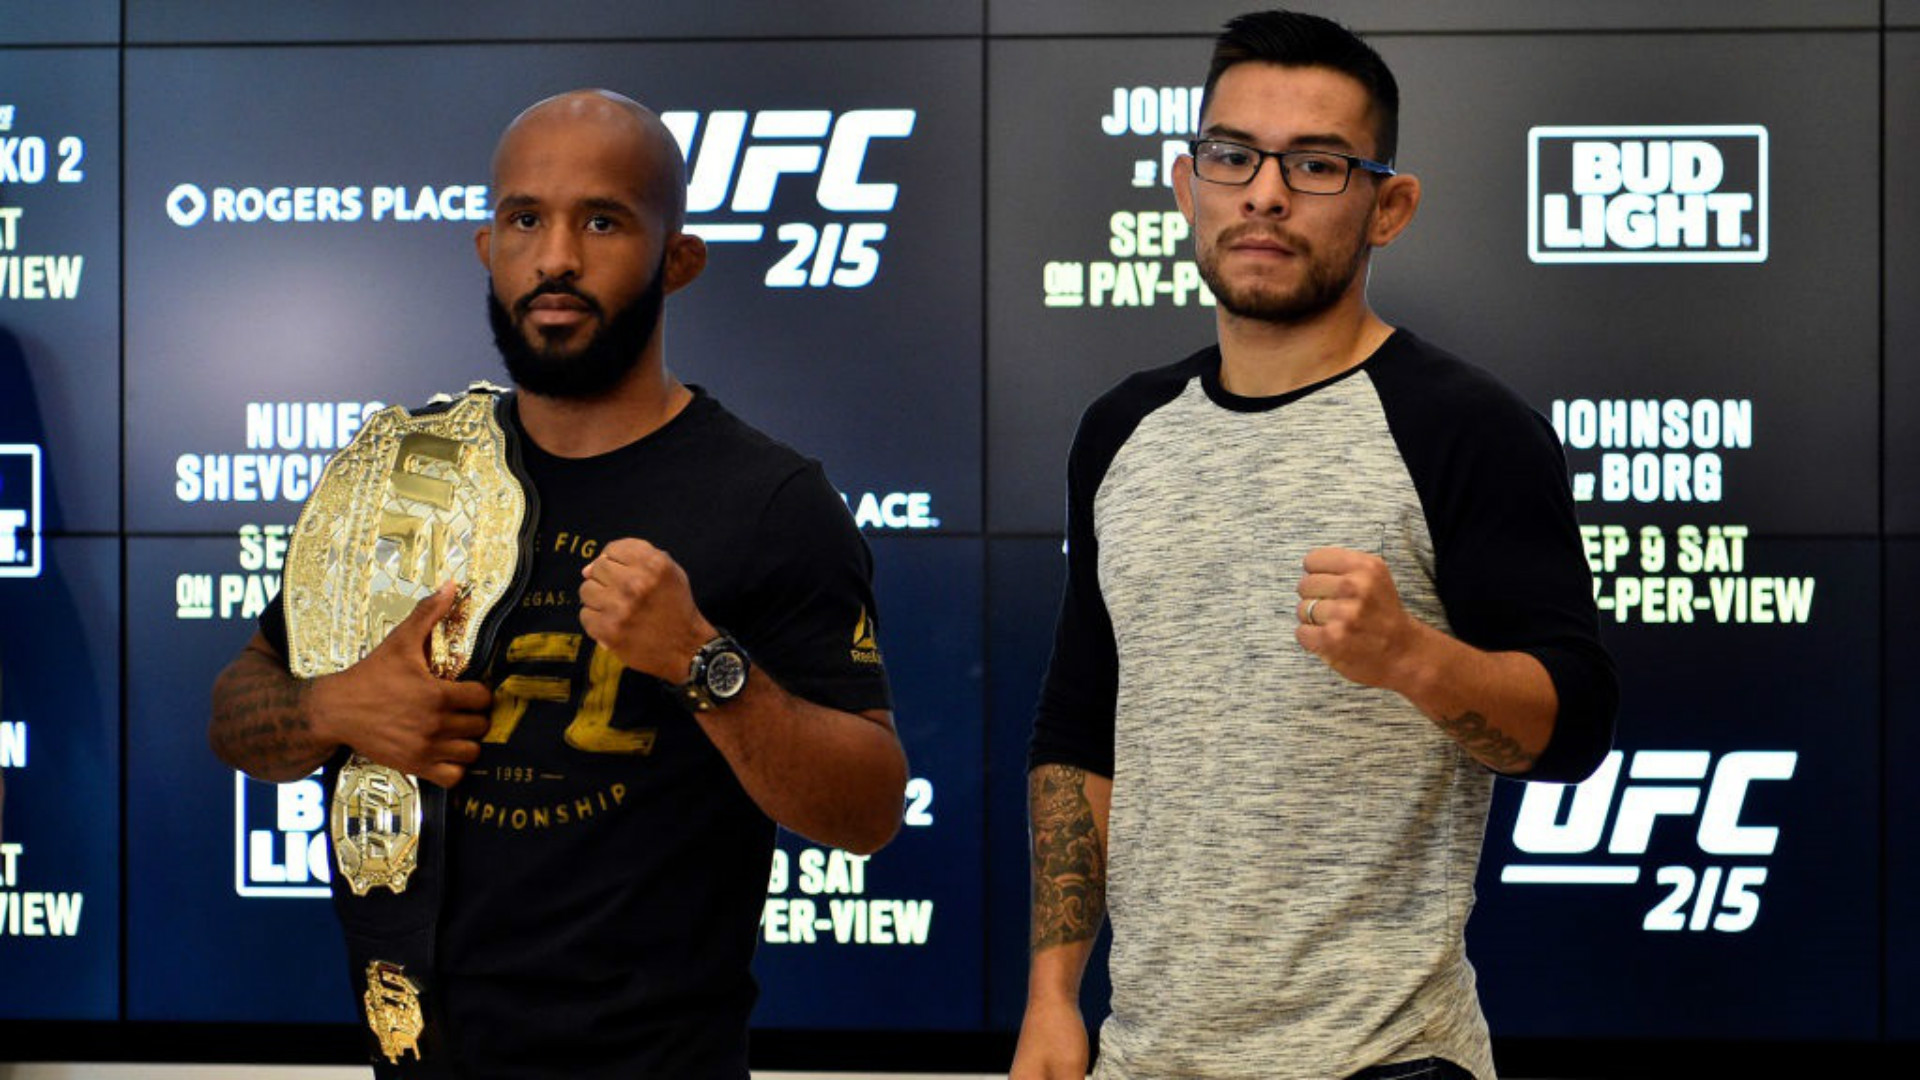 UFC 216: Several streaks on the line on Saturday